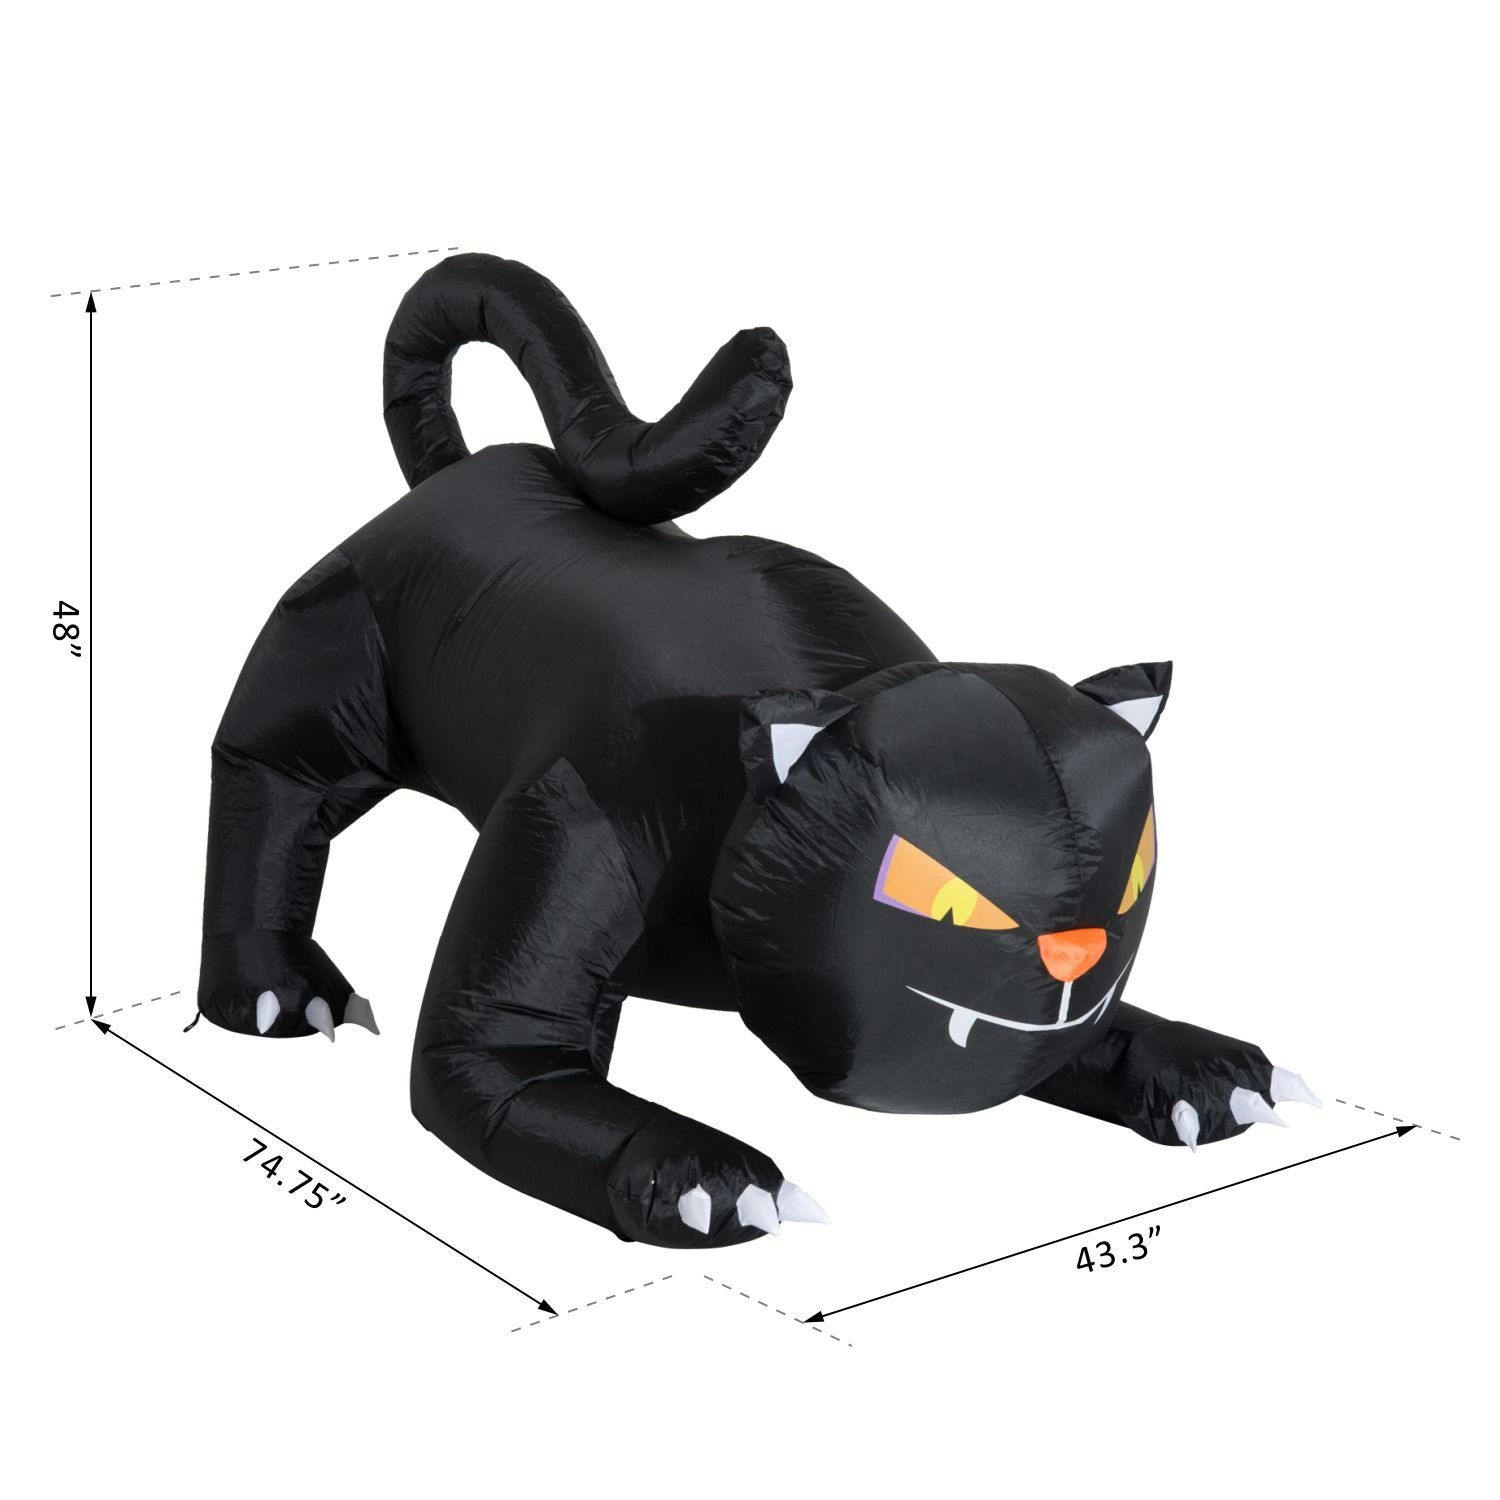 HOM 6' Long Outdoor Lighted Airblown Inflatable Halloween Lawn Decoration Crouching Black Cat